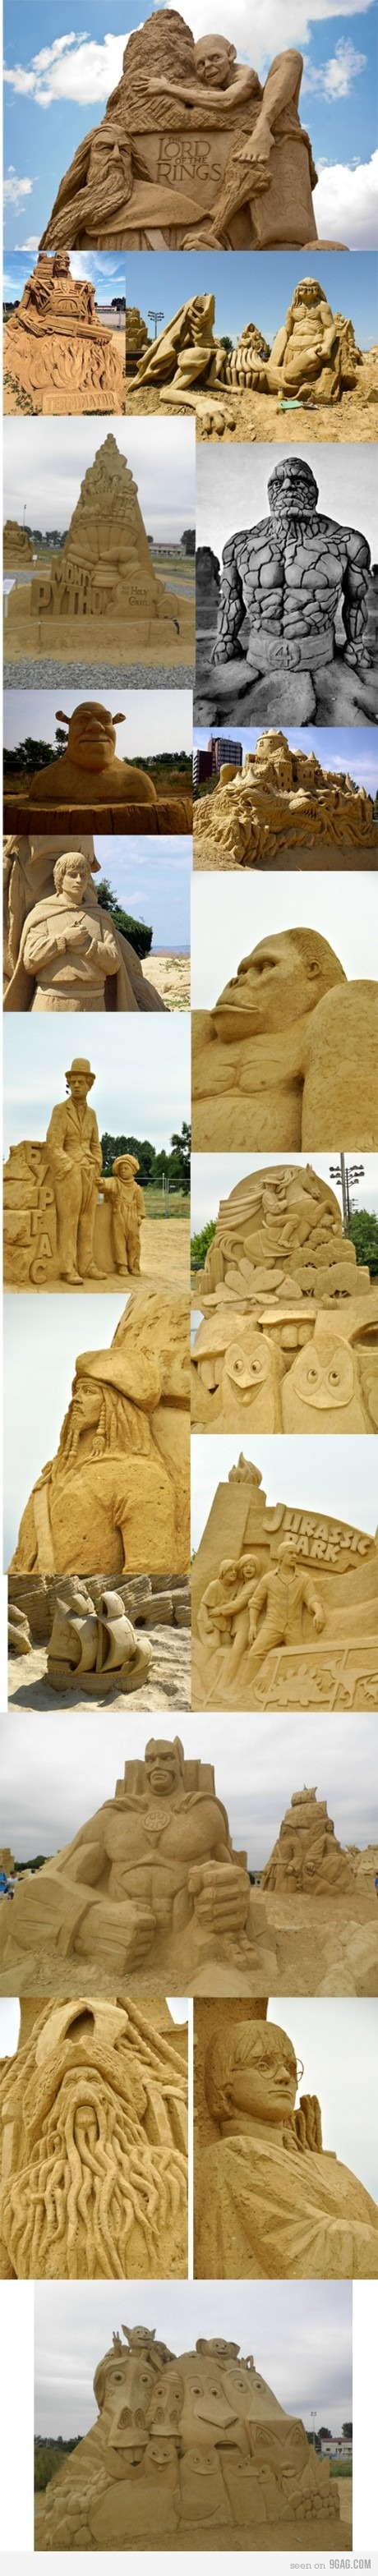 Bulgarian Sand Sculptures festival. Somehow they managed to make Harry Potter's glasses. WITH SAND.